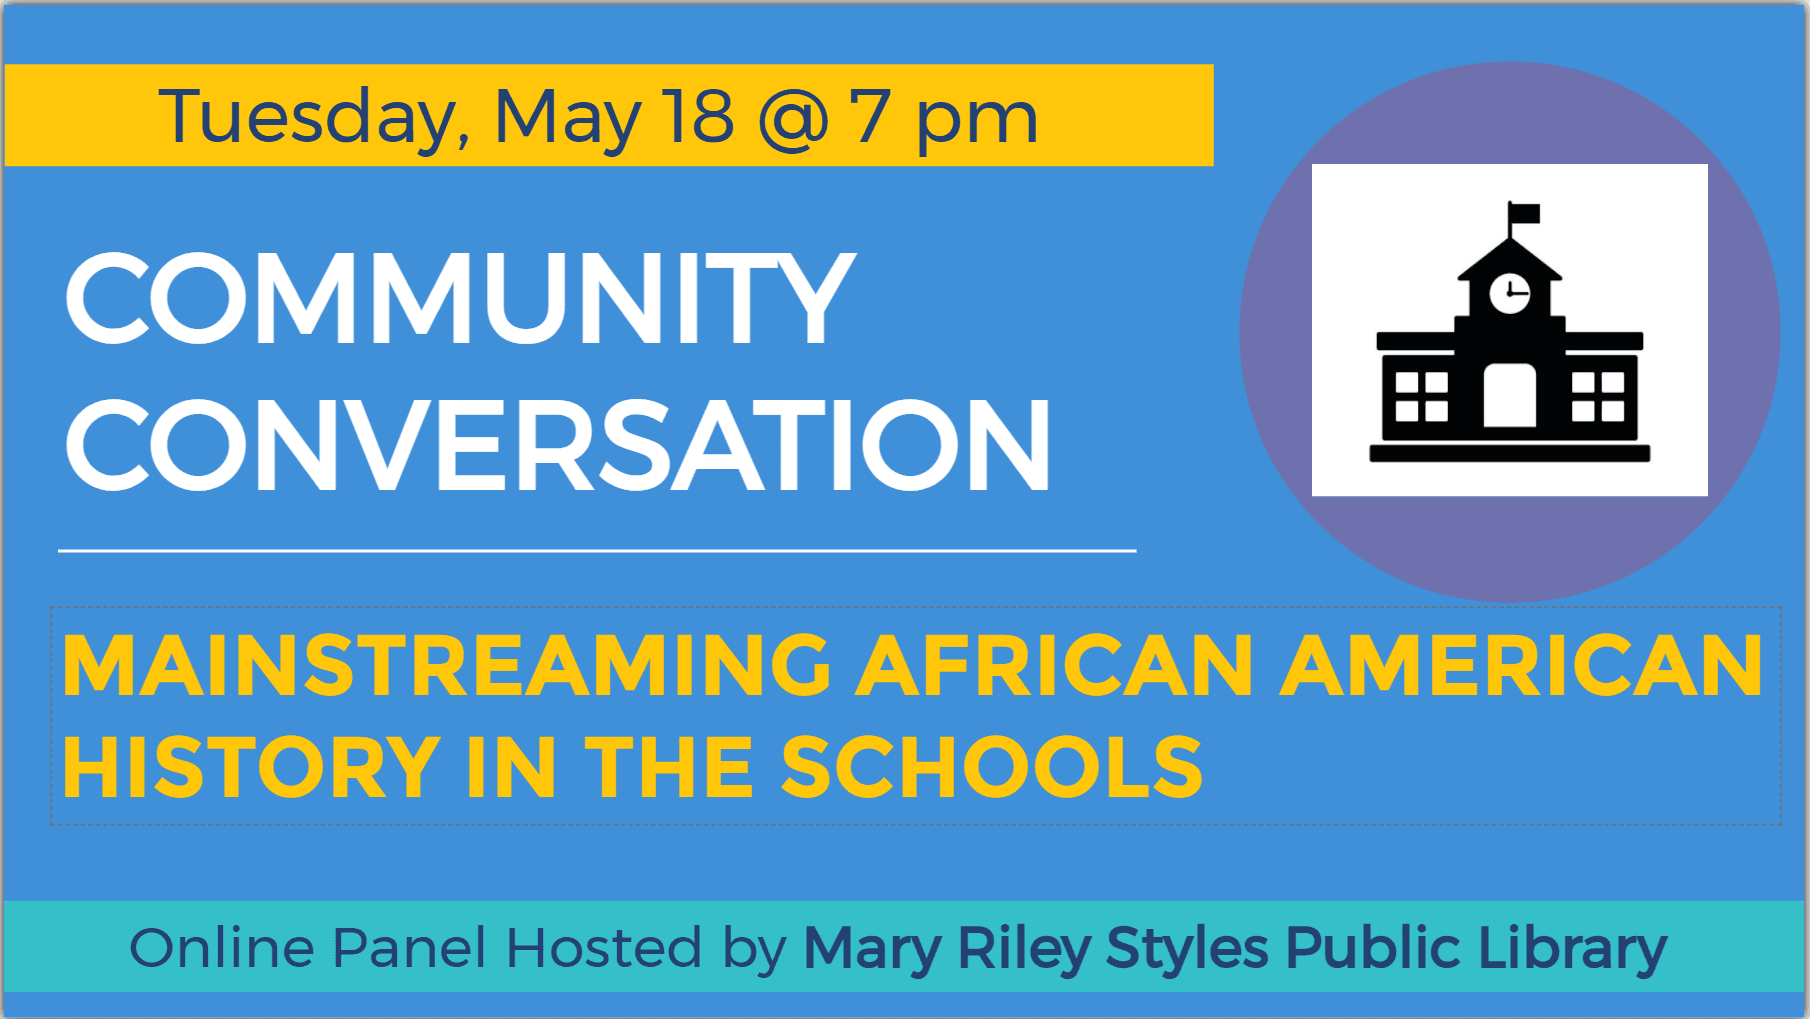 Community Conversation on Mainstreaming African American History in the Schools